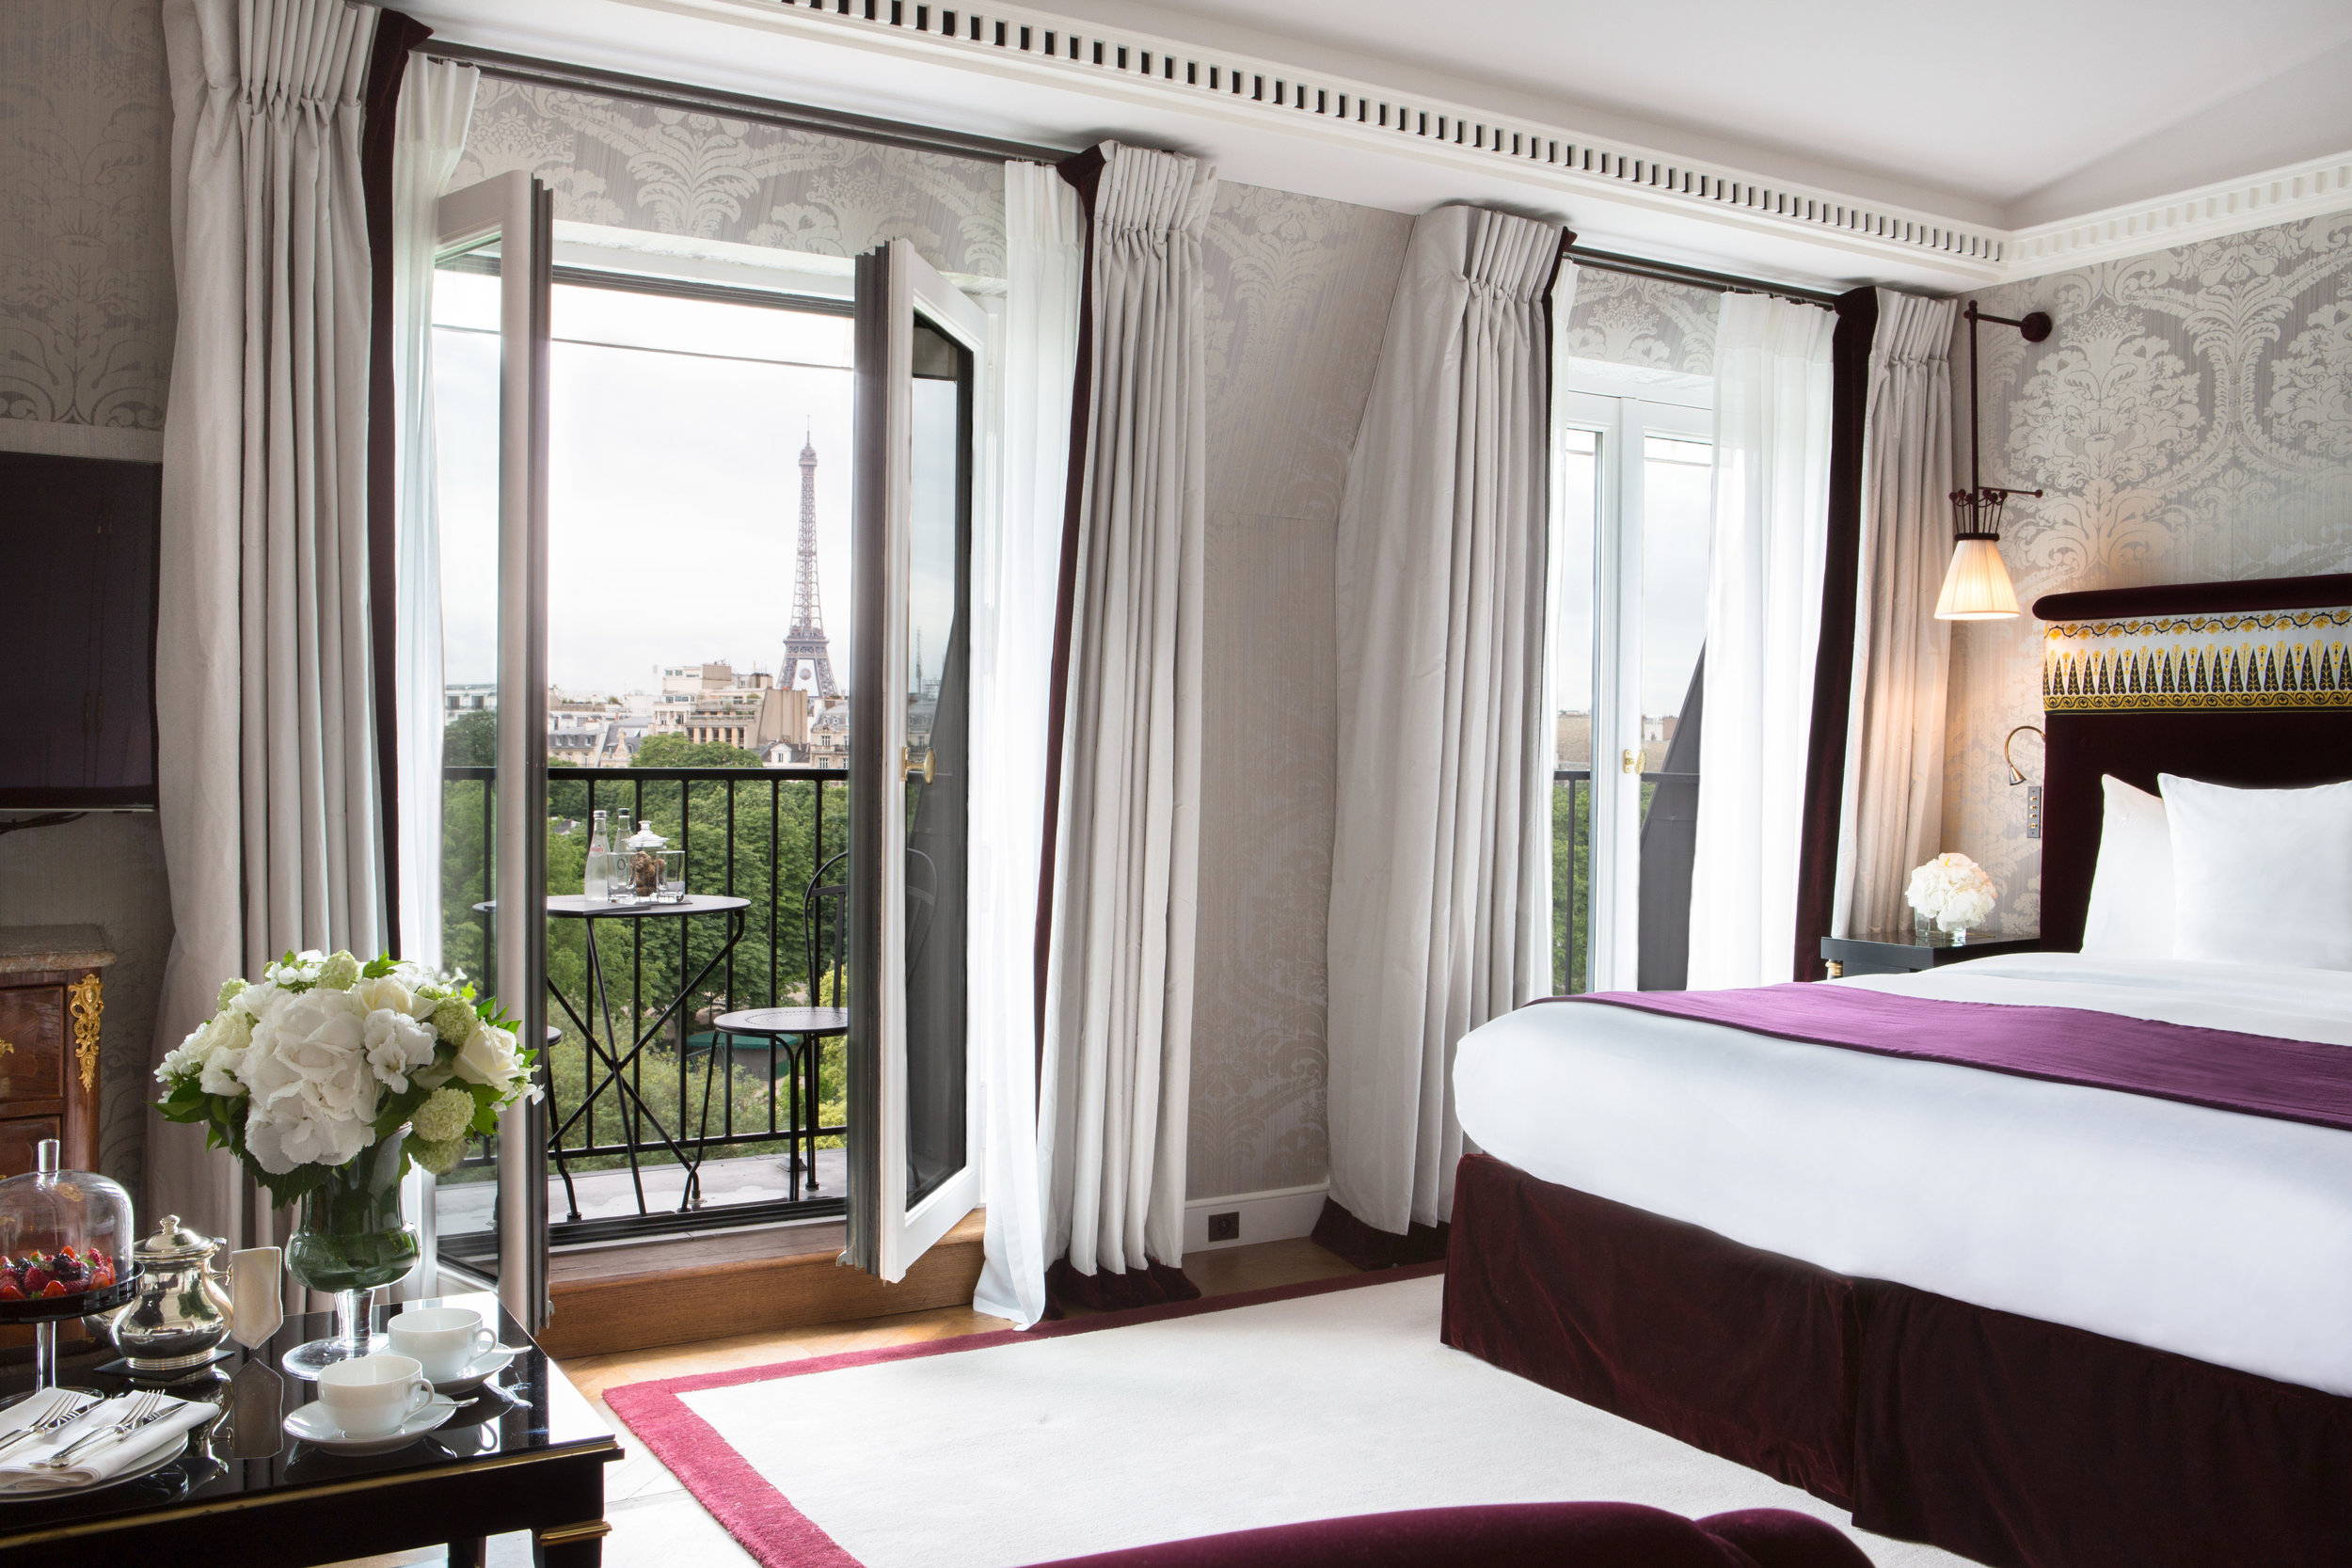 La Réserve Hotel and Spa - Paris - Voyager Club - Luxury Hotel